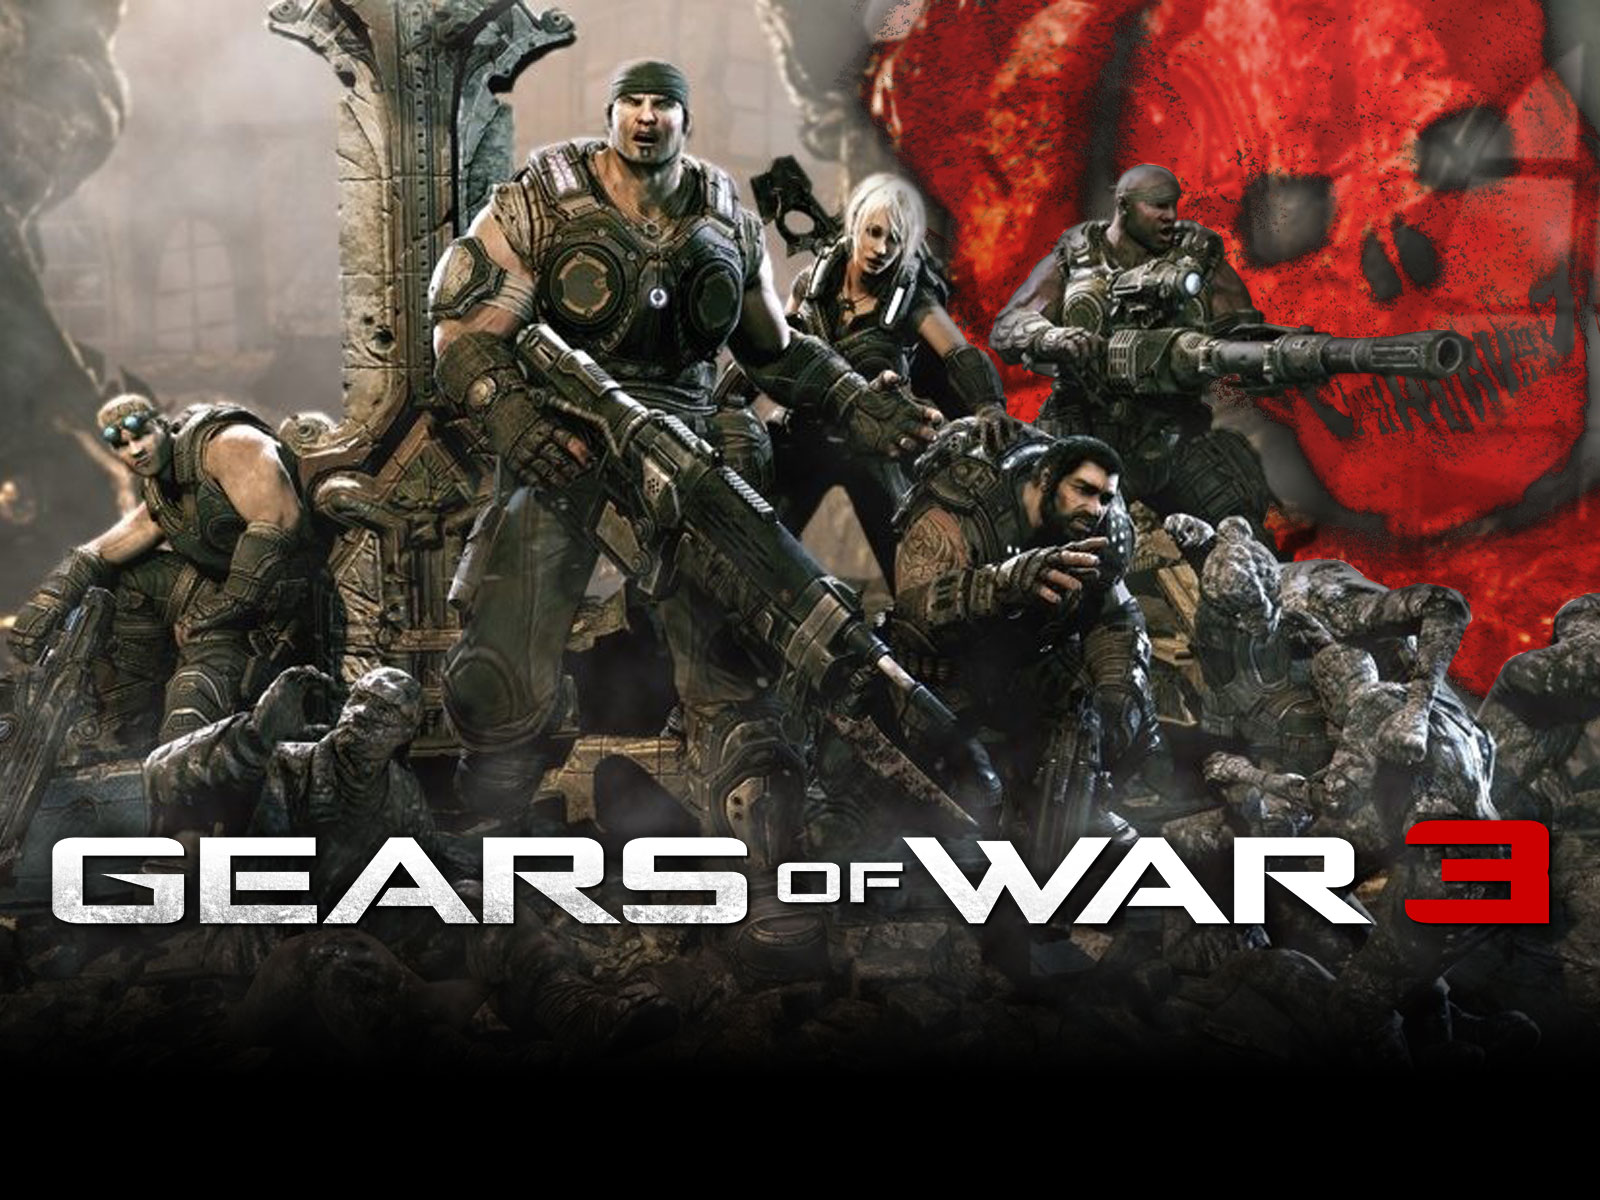 Gears Of War 3 Wallpapers: Games Extremos: Gear Of War 3